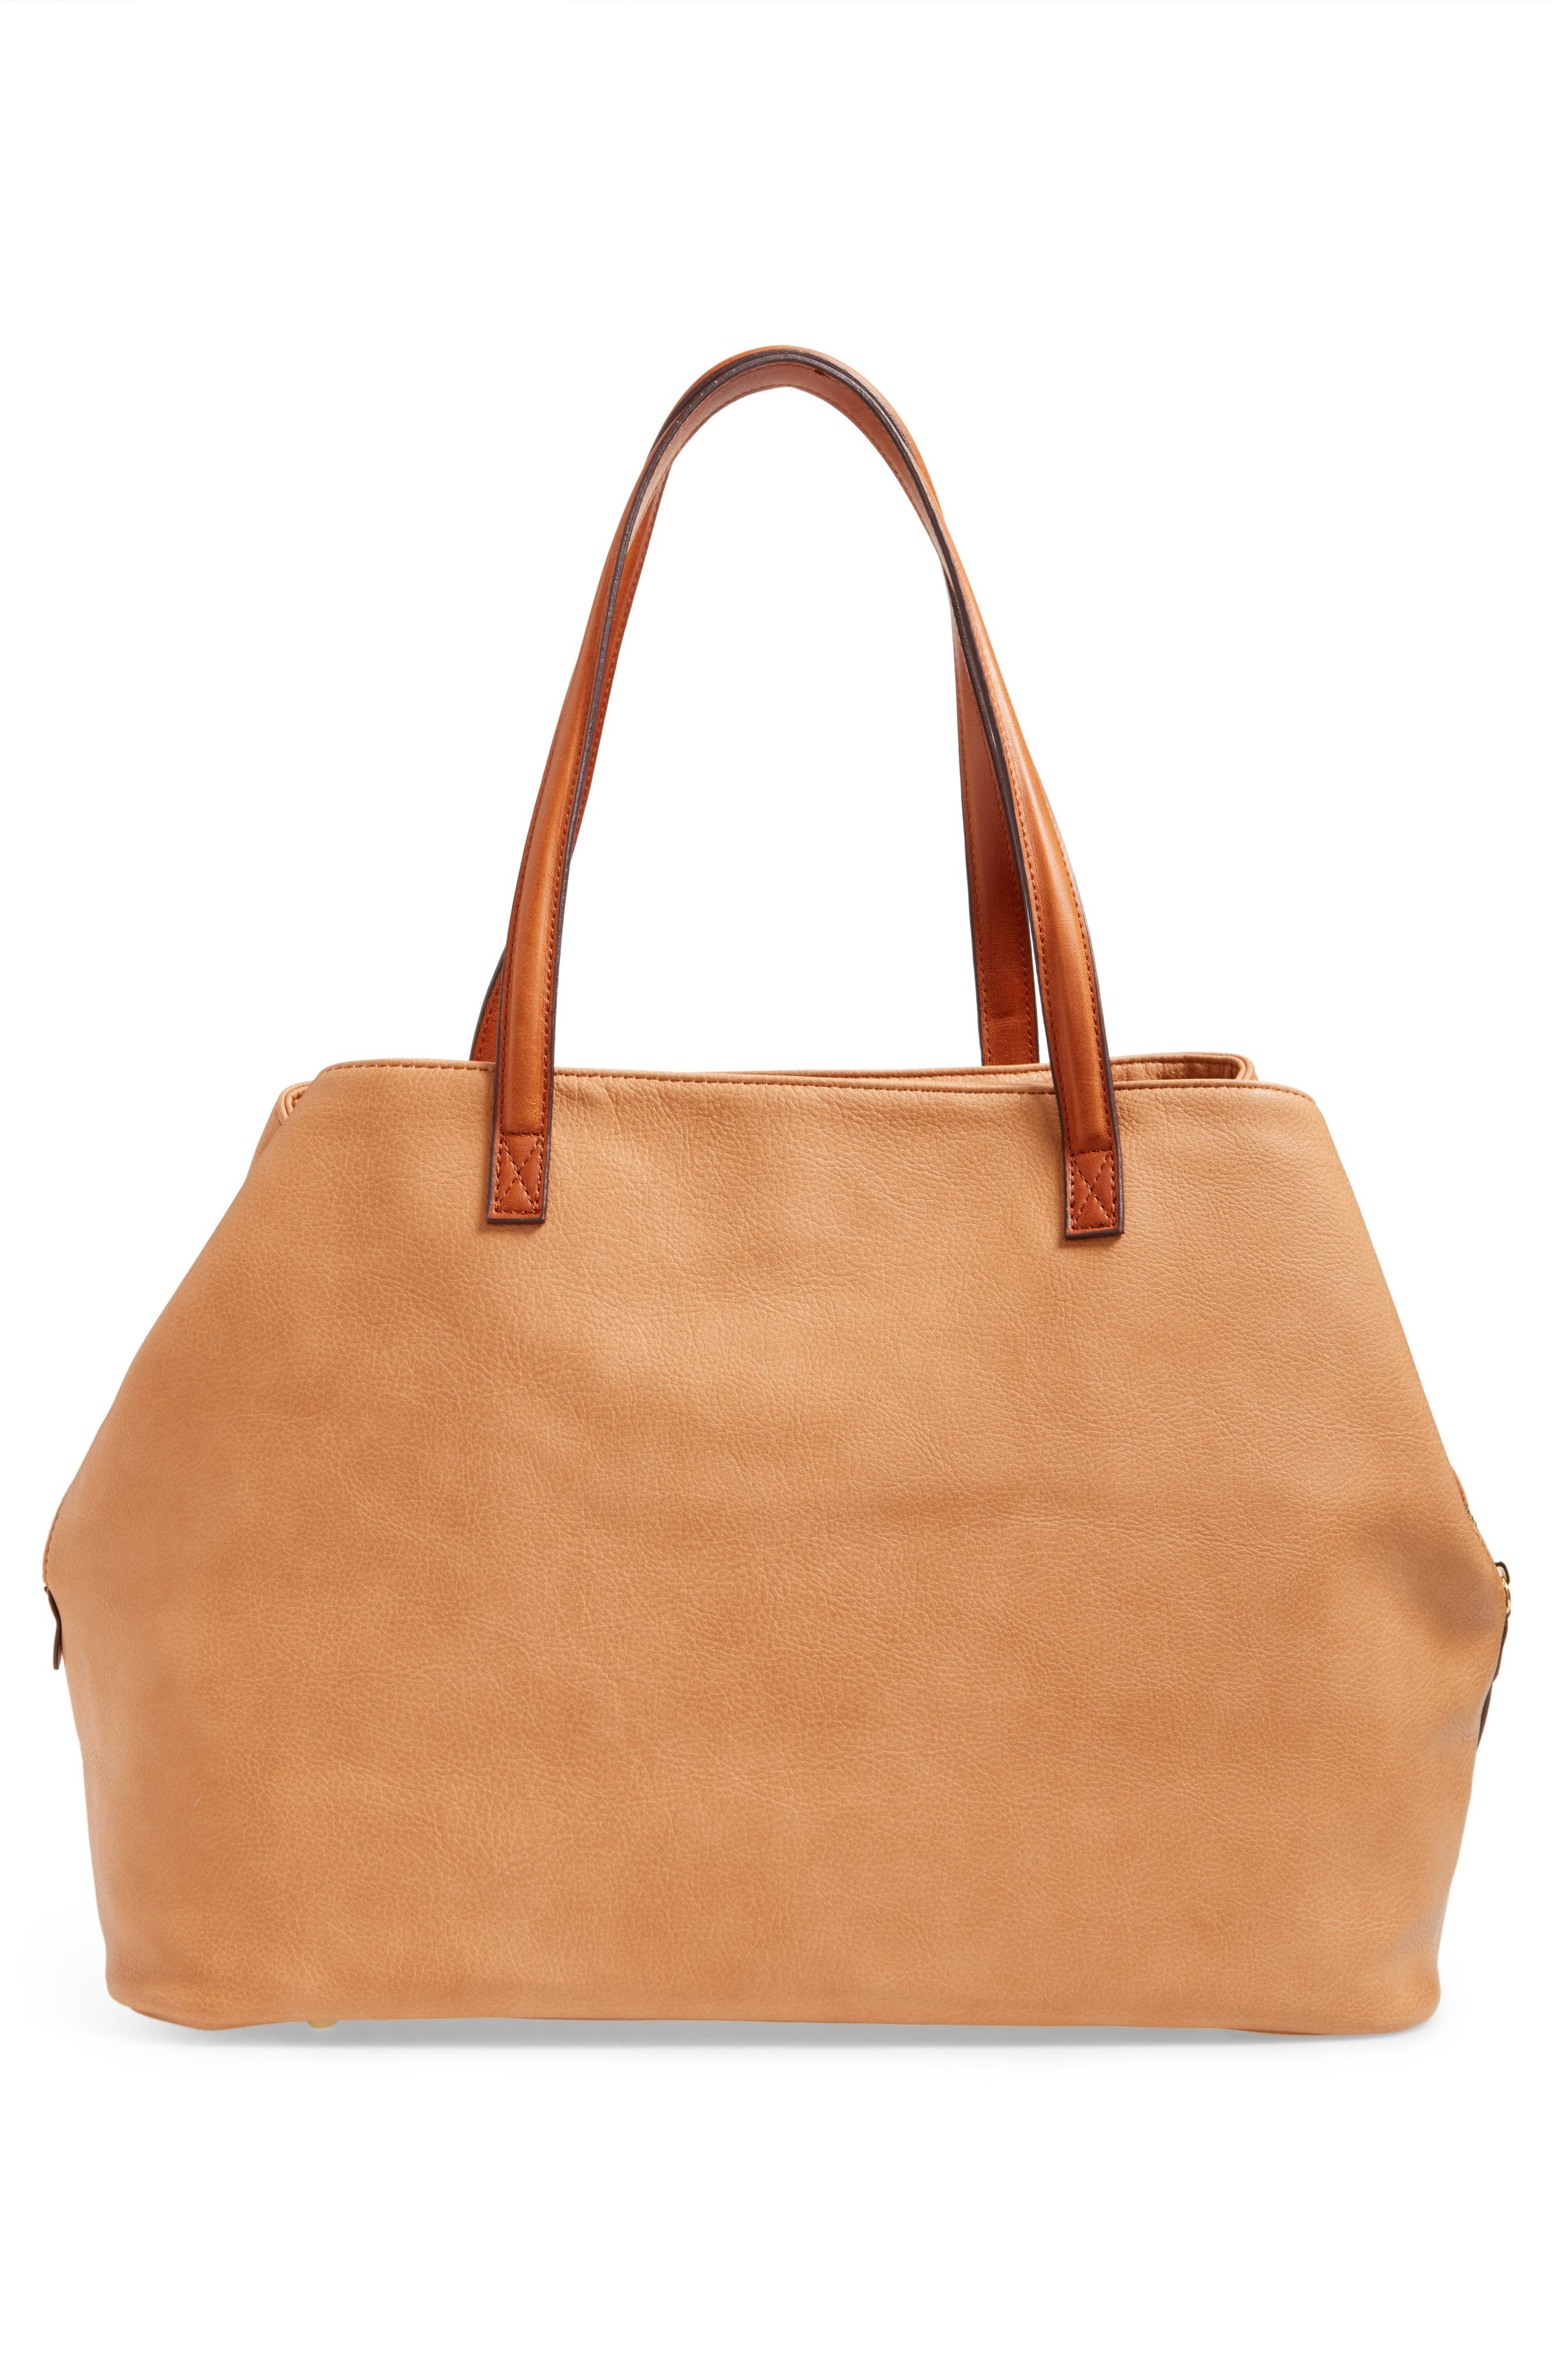 Millar Faux Leather Tote,                             Alternate thumbnail 2, color,                             Camel